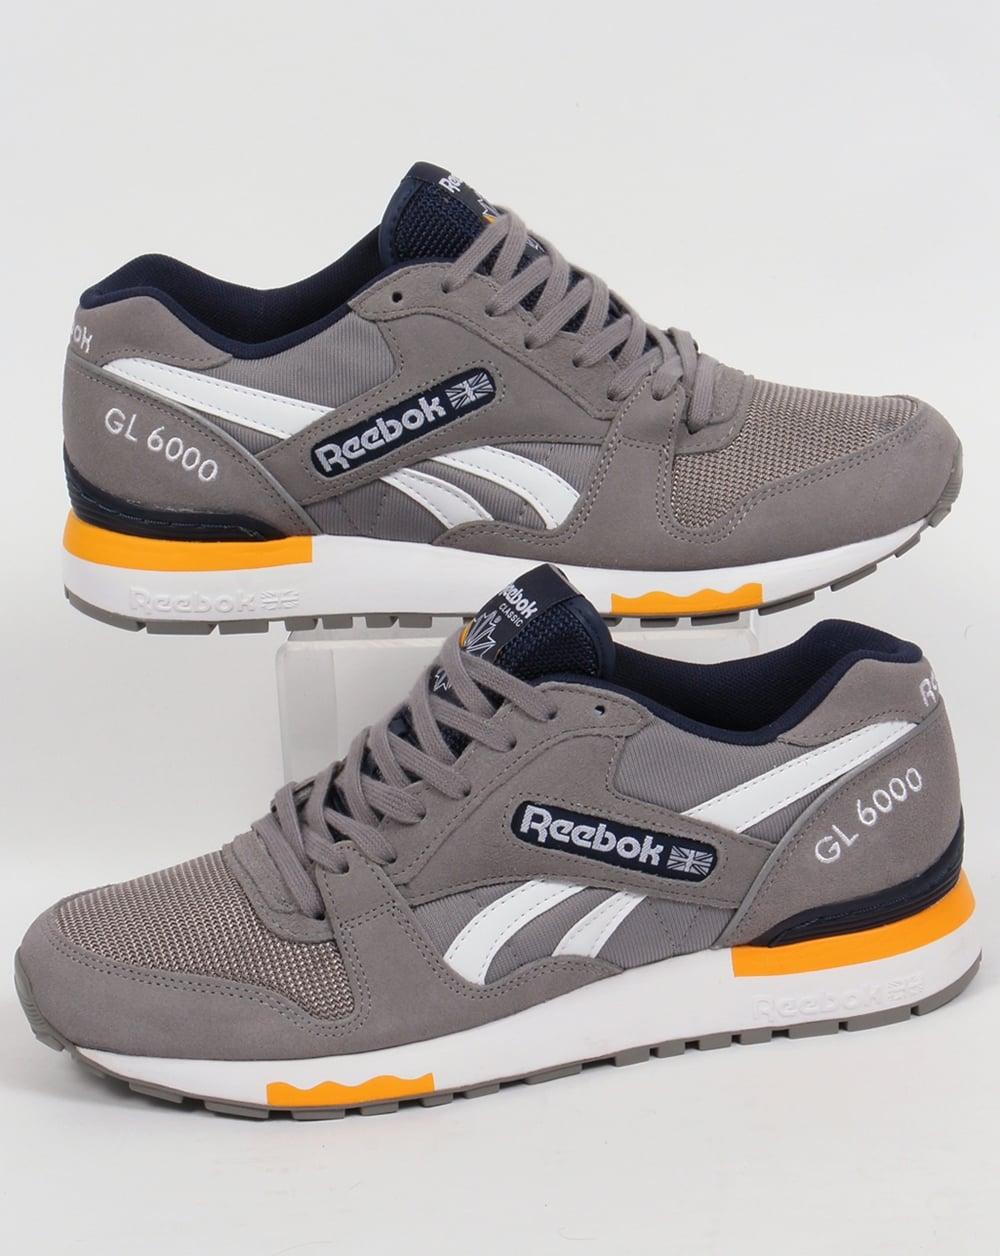 reebok gl 6000 pp trainers grey navy shoes runners mens. Black Bedroom Furniture Sets. Home Design Ideas